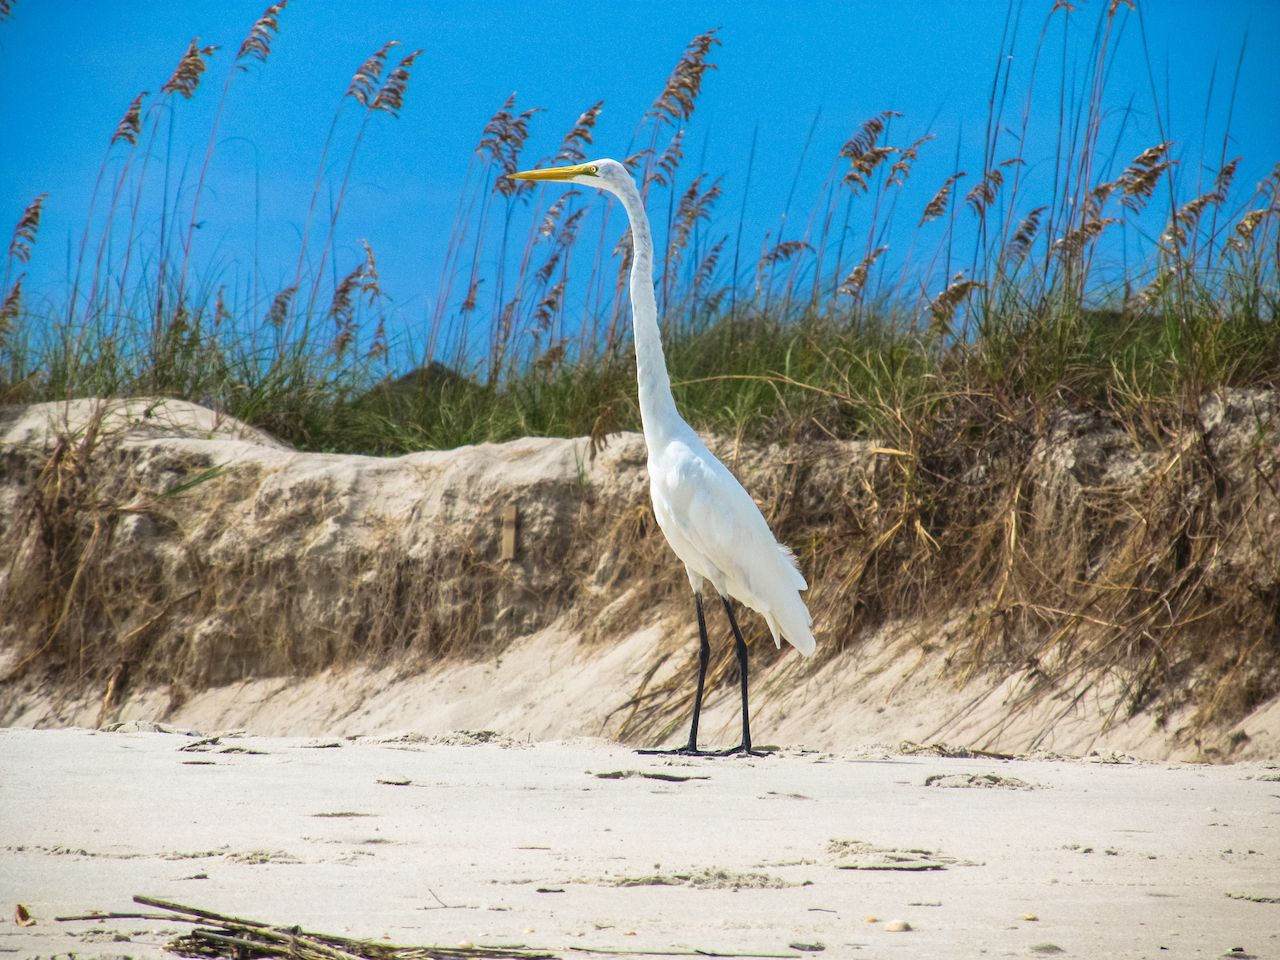 Great Egret at Cherry Grove just north of Myrtle Beach, SC